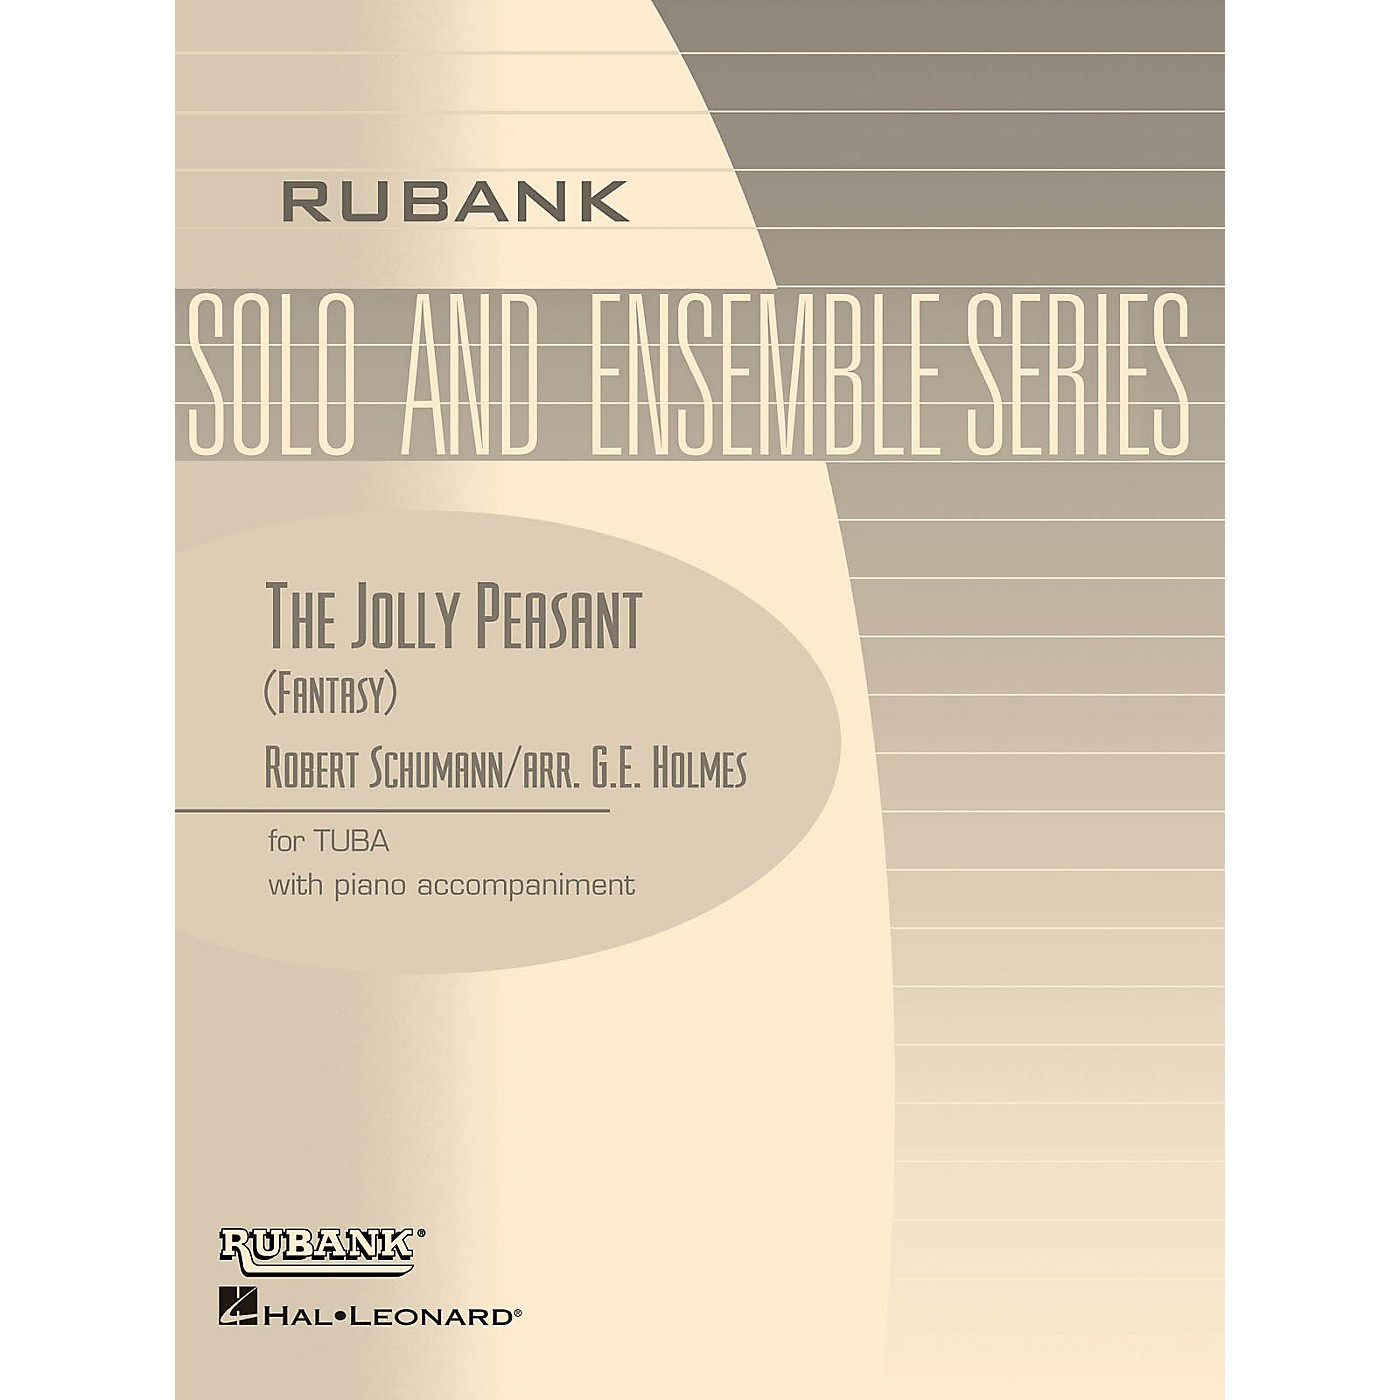 Rubank Publications The Jolly Peasant (Fantasy) Rubank Solo/Ensemble Sheet Series Softcover thumbnail